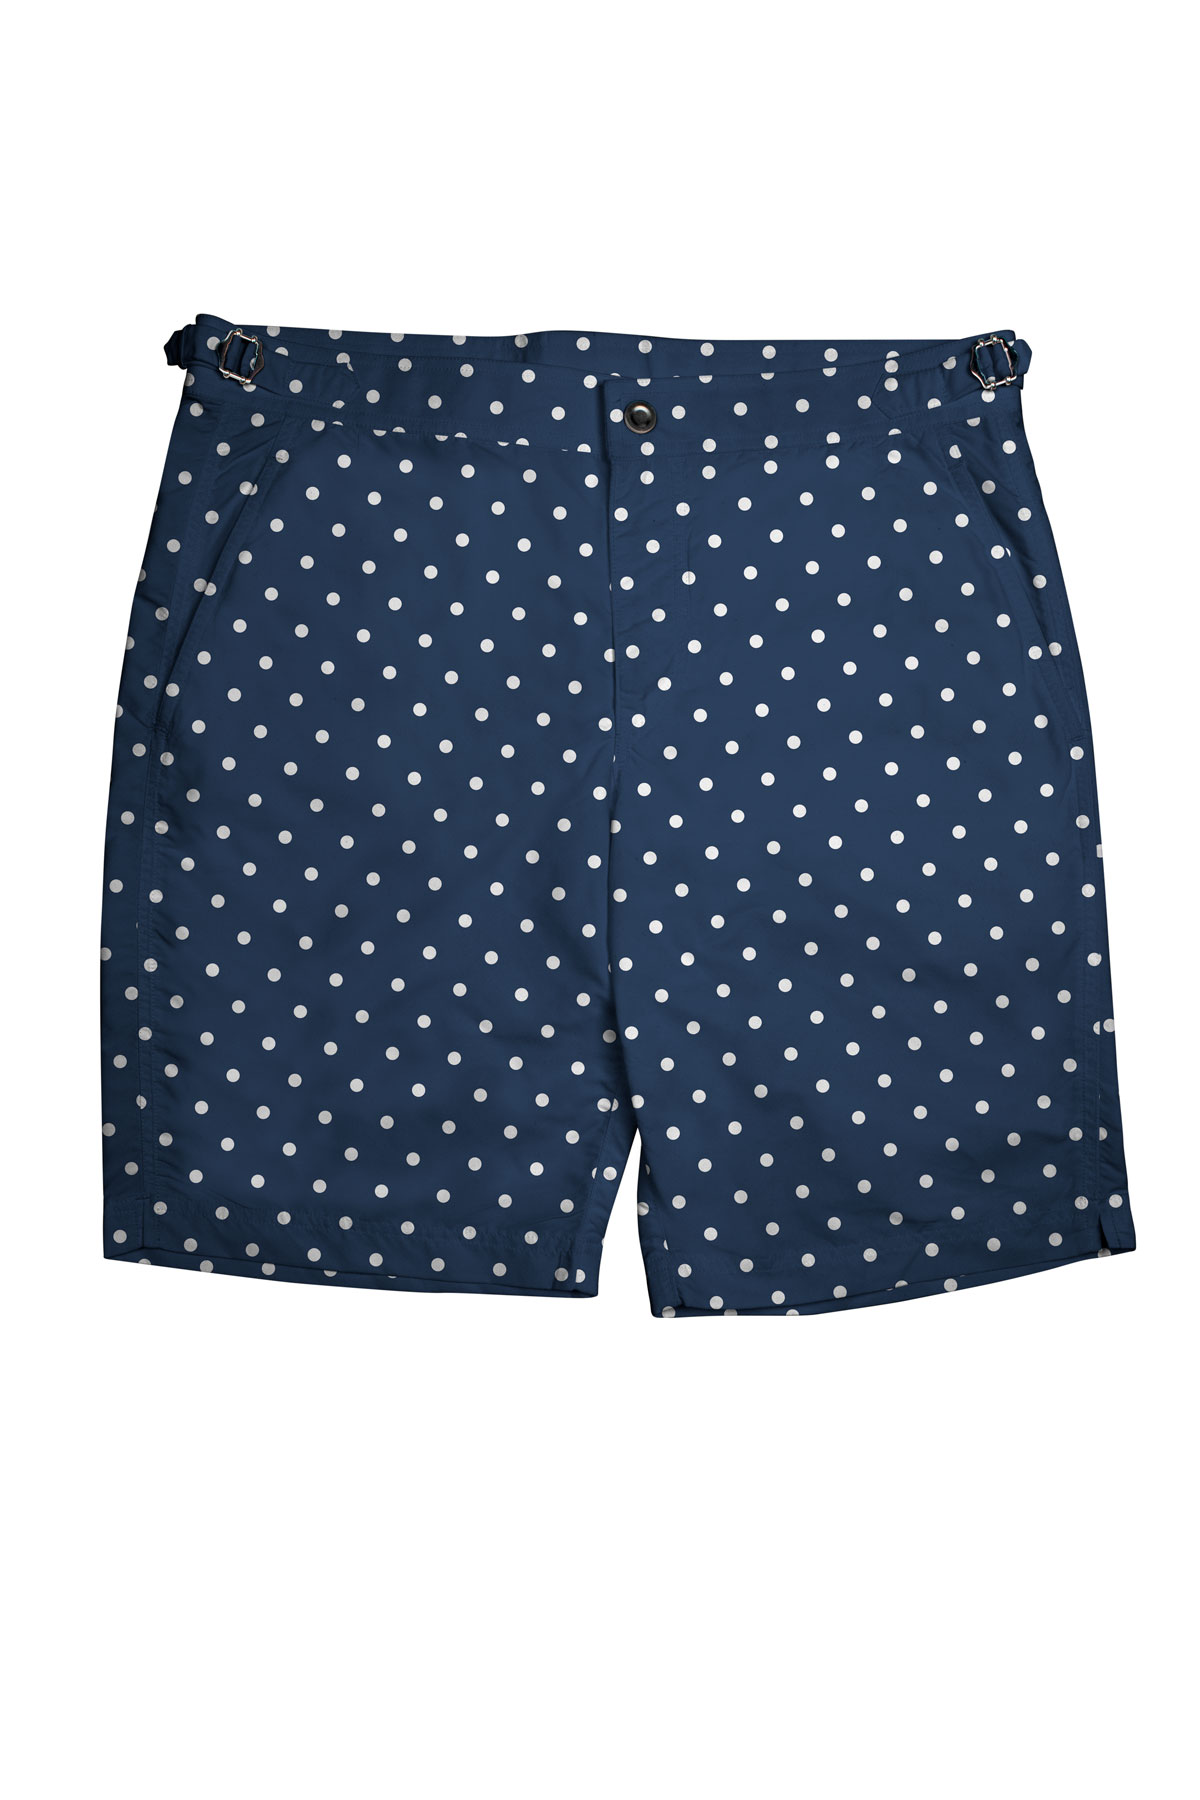 Navy/White Polka Dots Swim Shorts